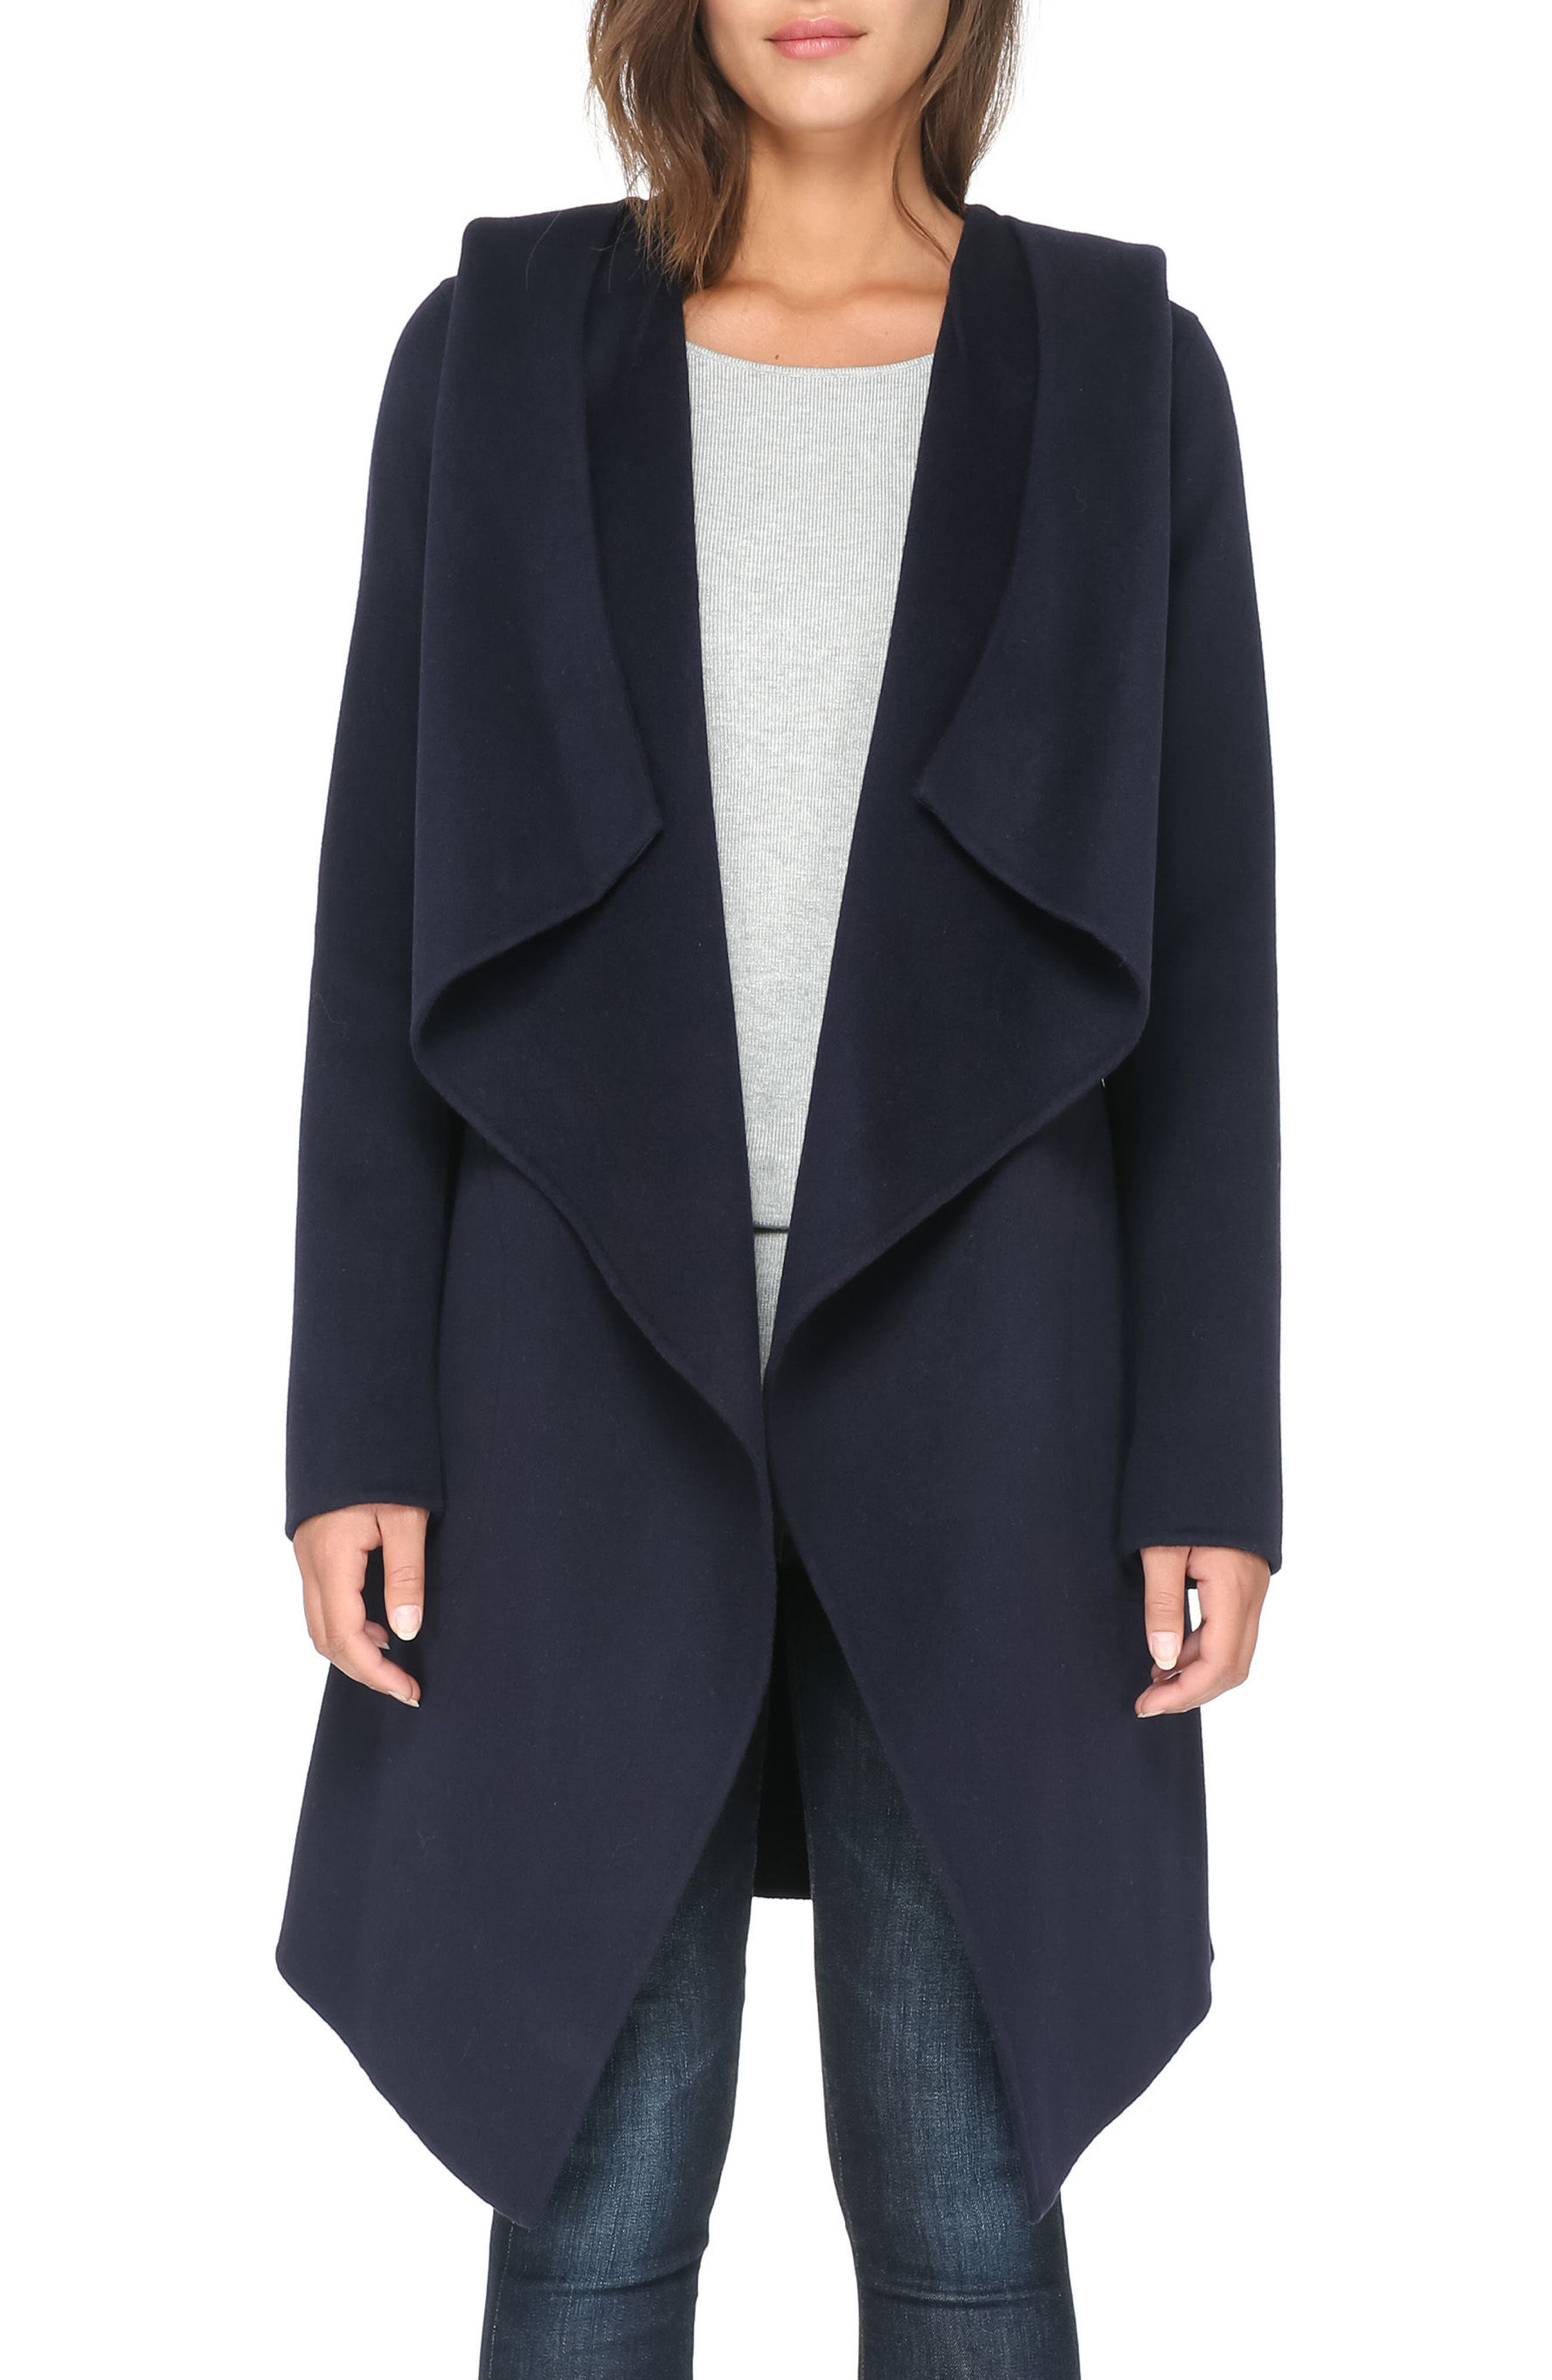 Main Image - Soia & Kyo Reversible Double Face Wool Blend Coat